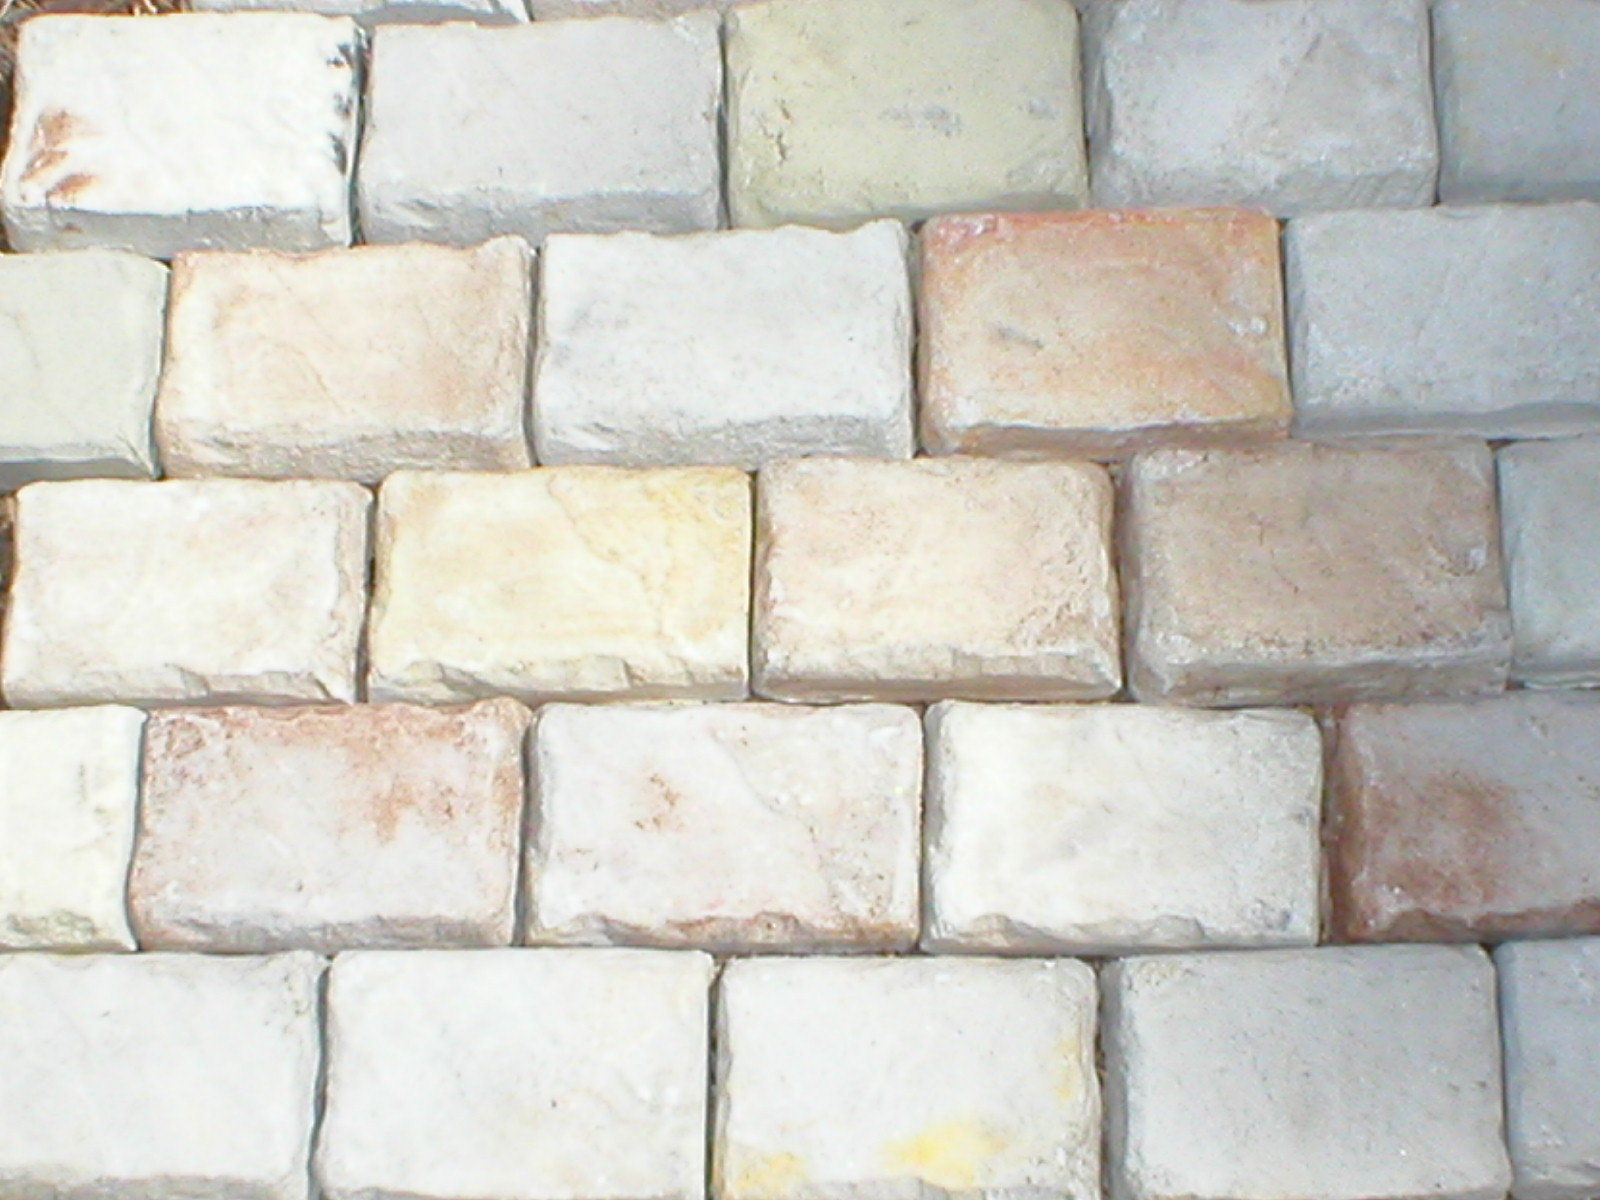 "Cobblestone Paver Molds 12 Make Patio Pavers 4x6"" For Walls Patios Garden Paths"